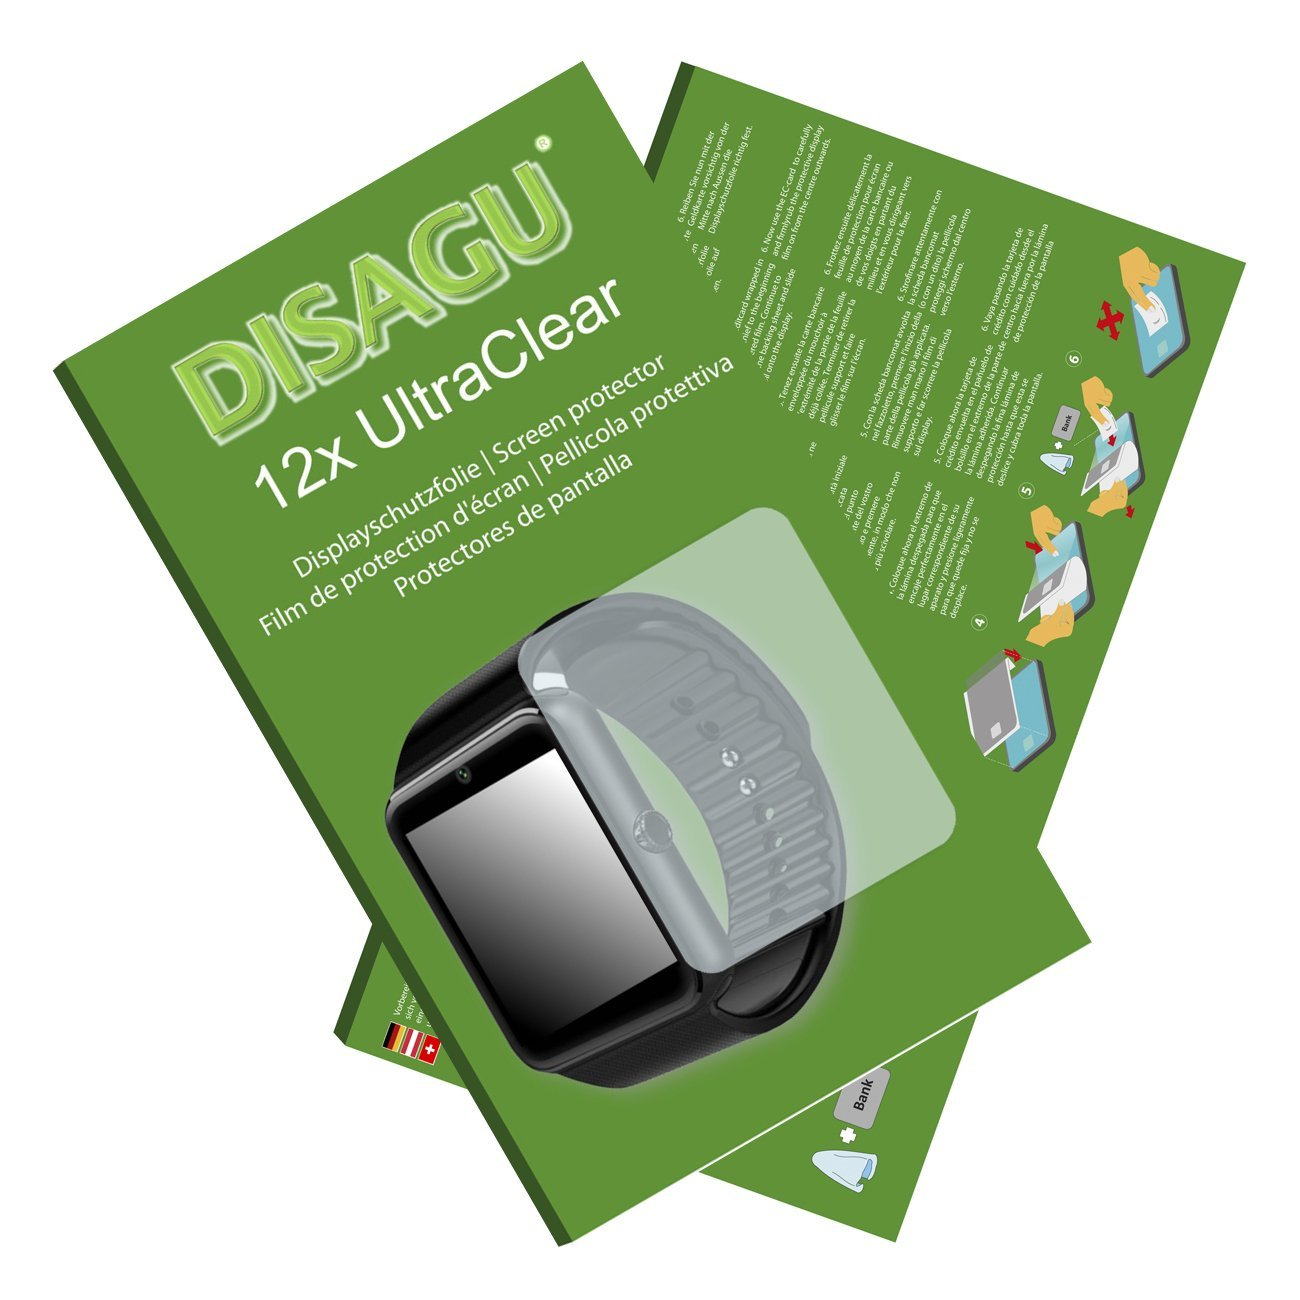 DISAGU 12x Ultra Clear Screen Protector for GSTEK Bluetooth Smart Watch (intentionally smaller than the display due to its curved surface)